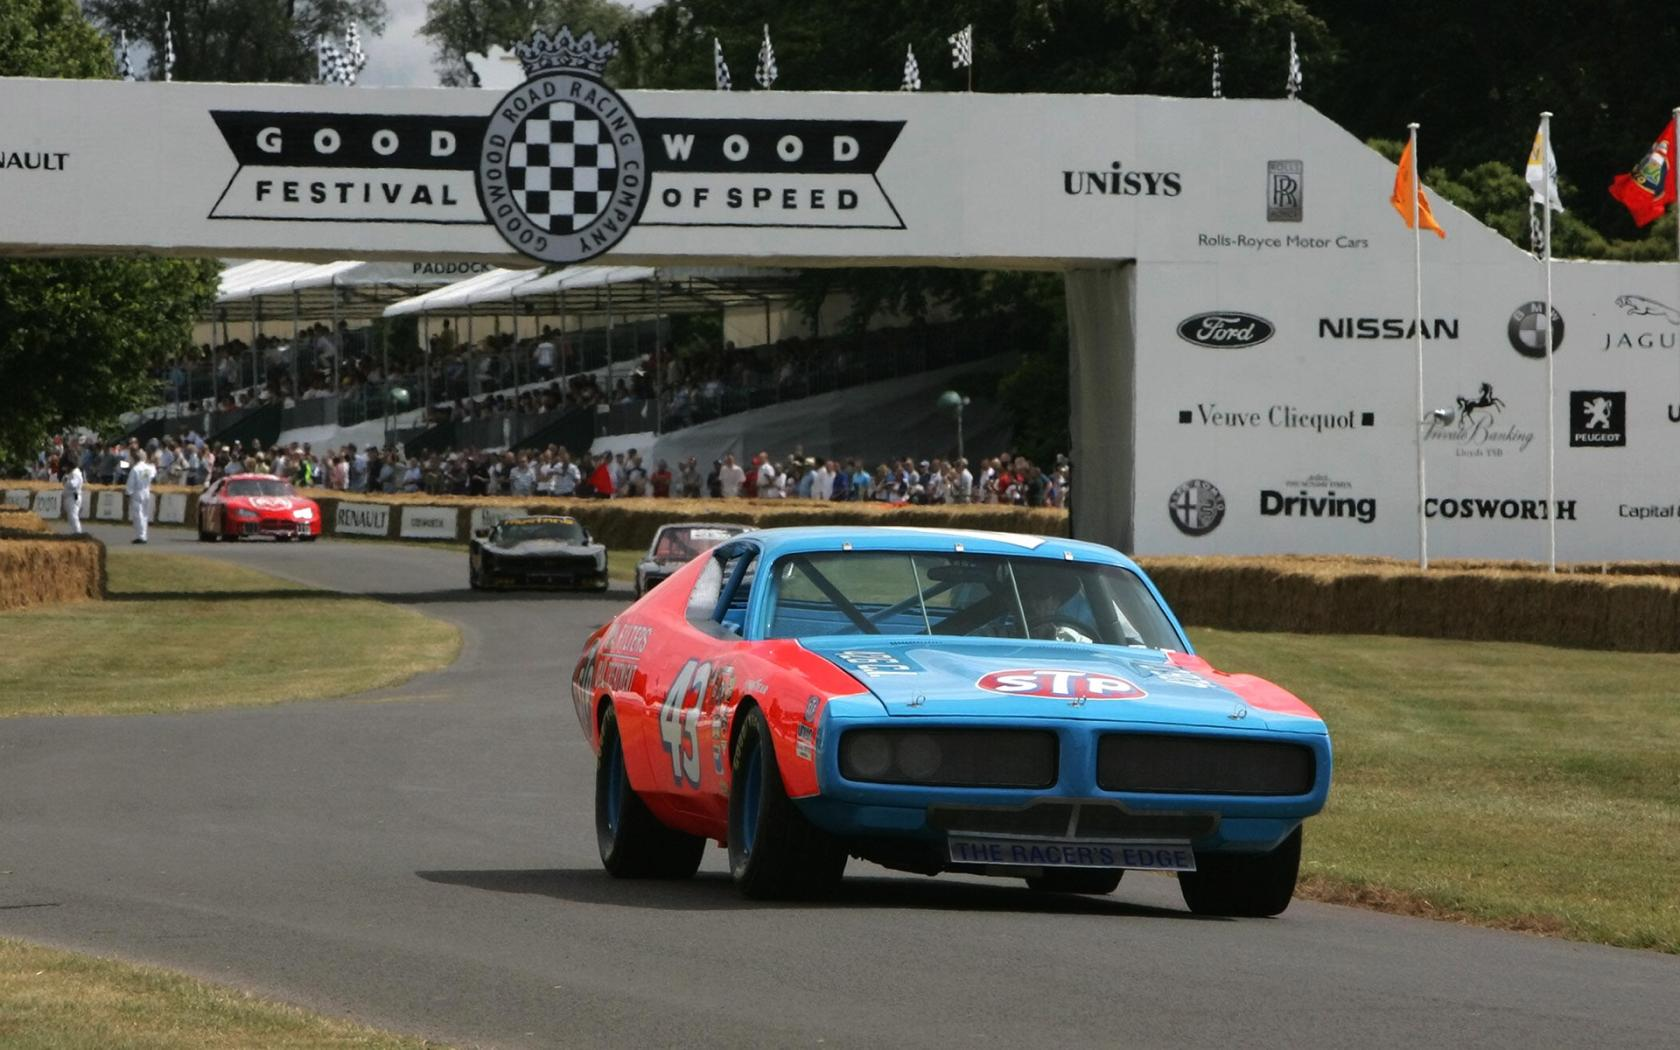 1972 Dodge Charger Nascar Race Car Front Angle 1680x1050